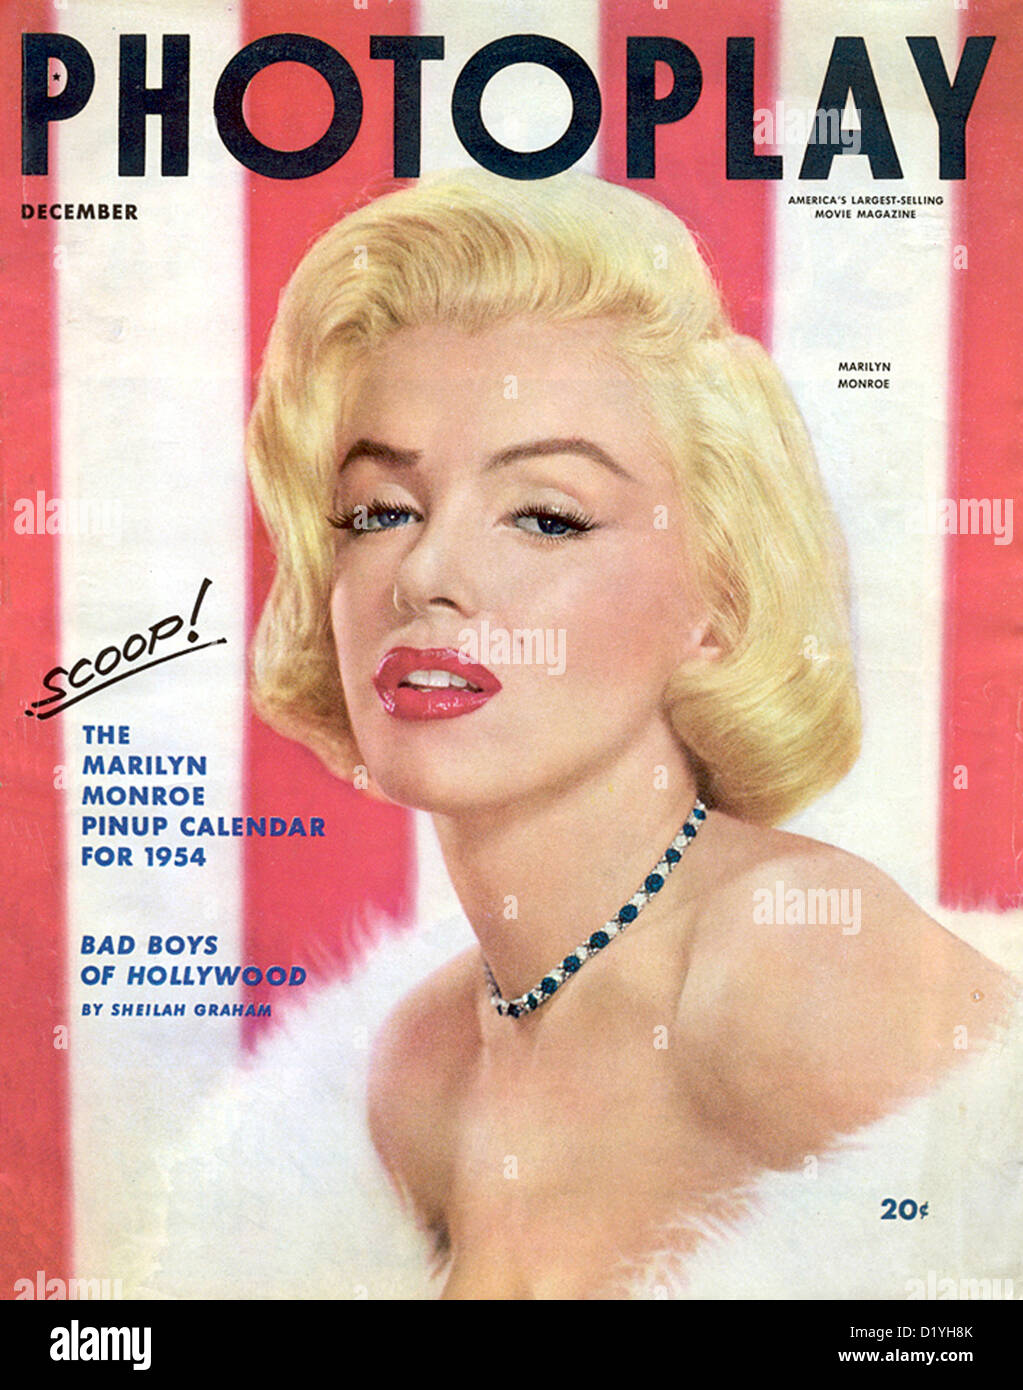 MARILYN MONROE 1926 1962 US Film Actress On The December 1953 Cover Of